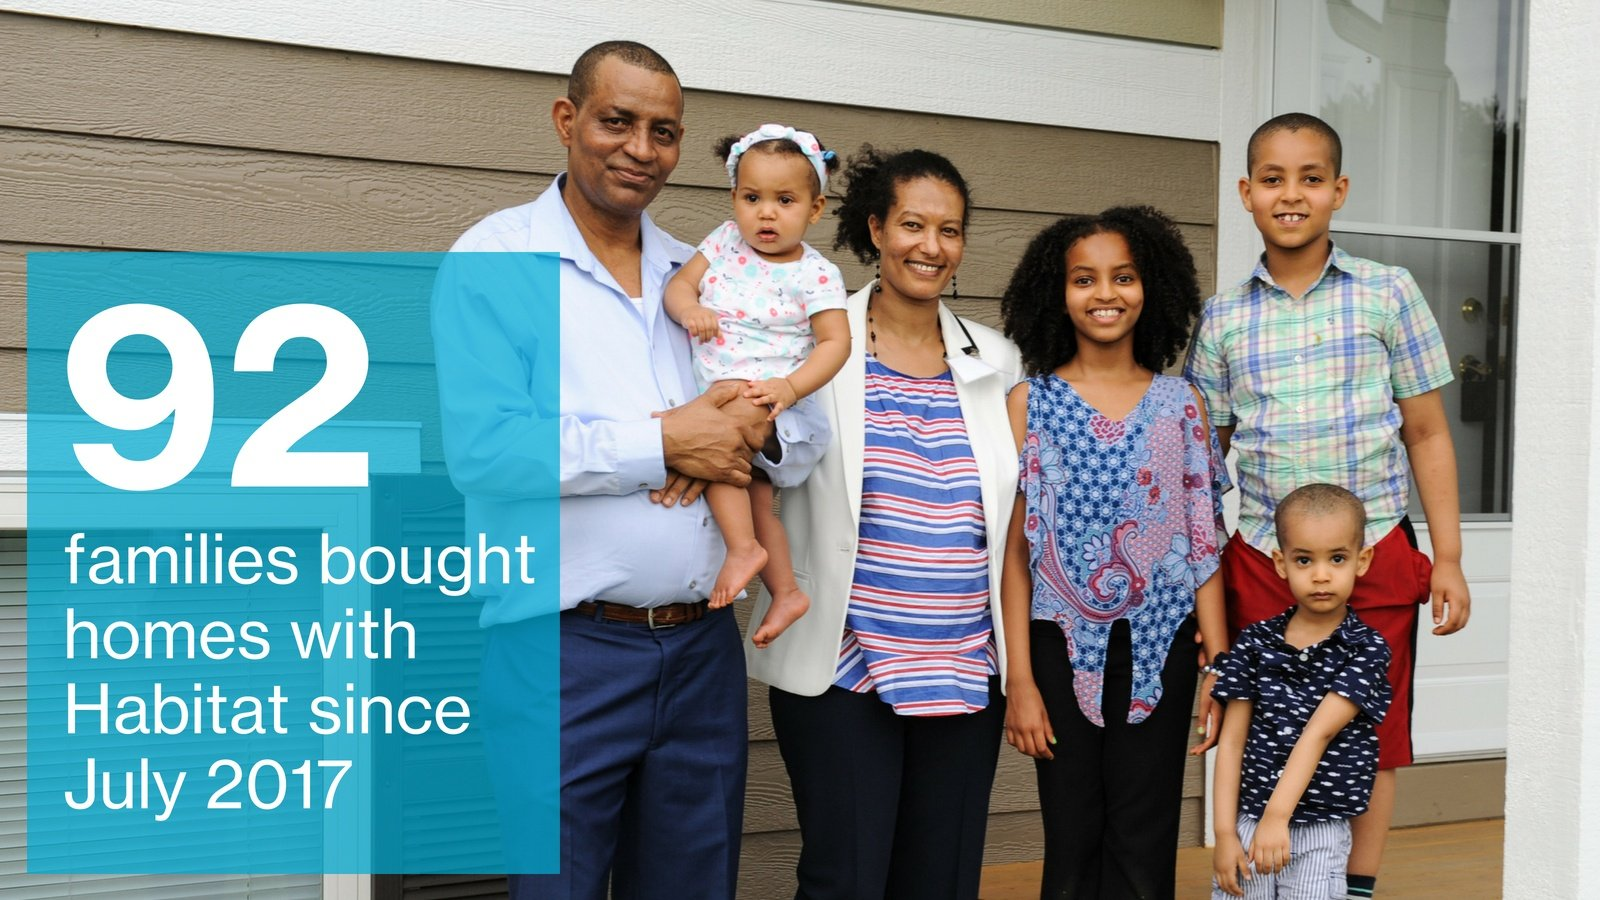 92 families achieved homeownership this year